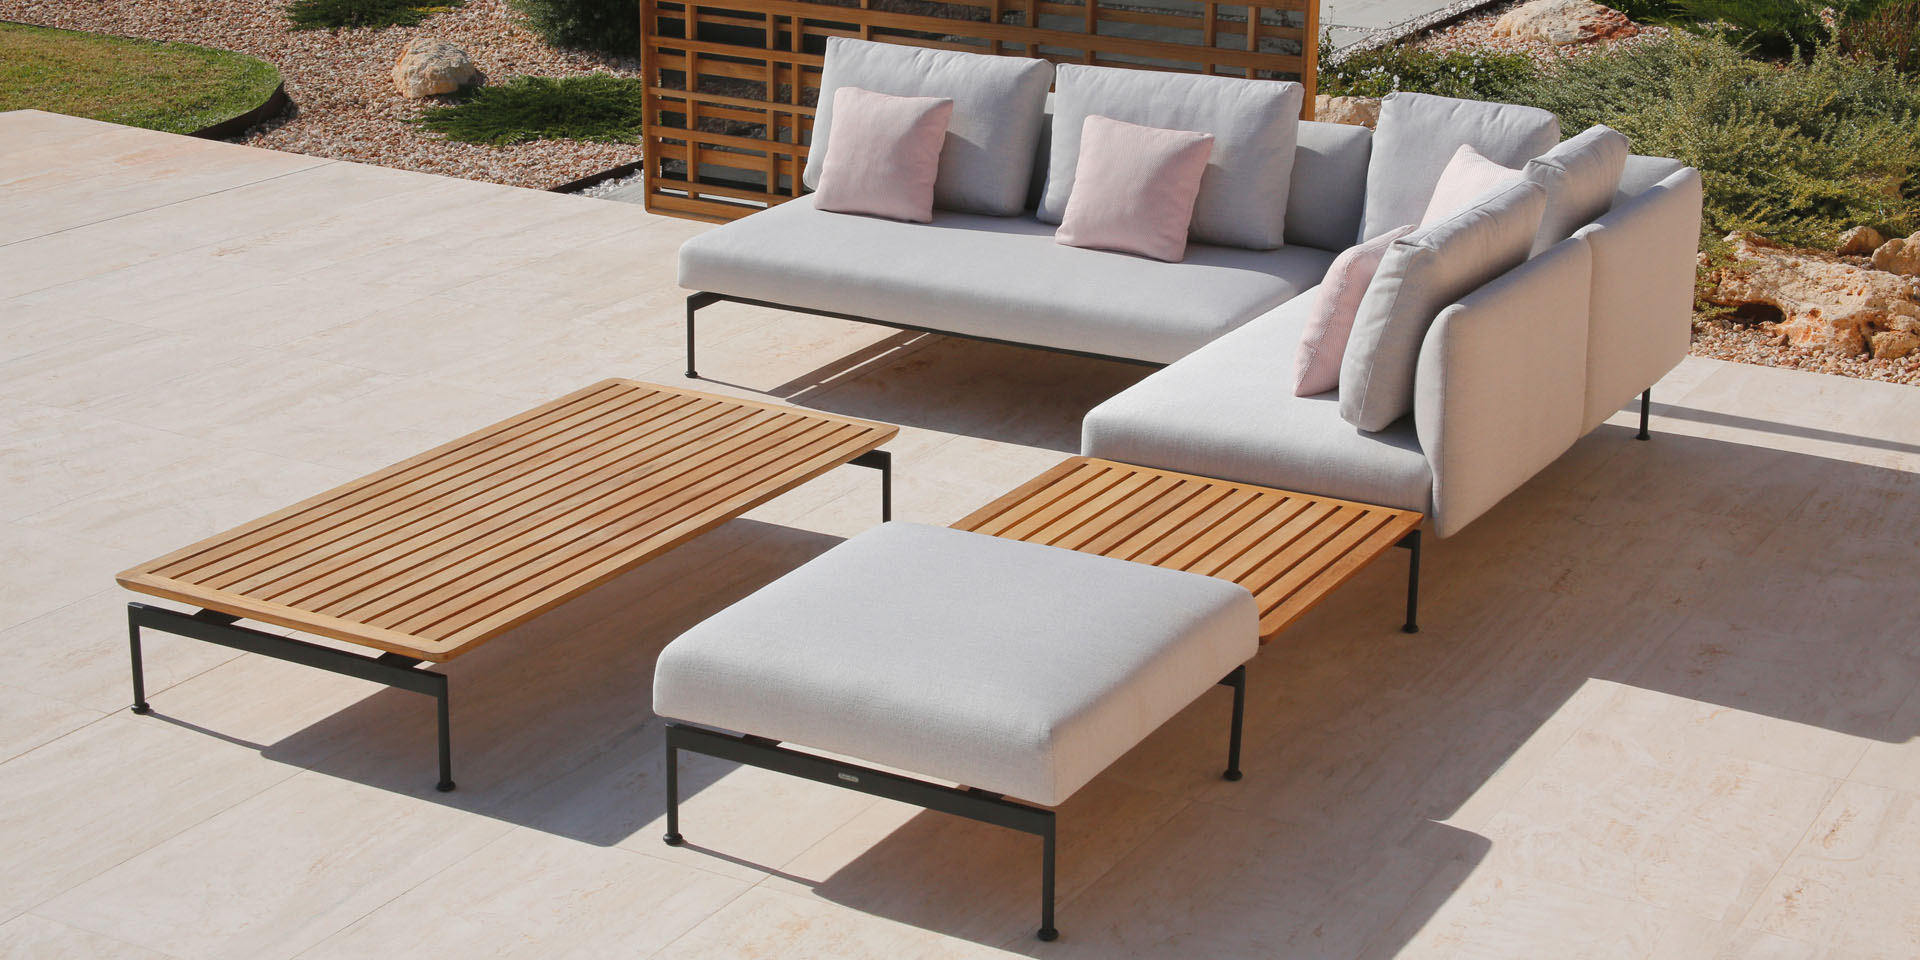 Barlow Tyrie Celebrates 100 Years Of Outdoor Furniture – The Regarding Most Popular Outdoor Living Pomona Loungers (View 2 of 25)